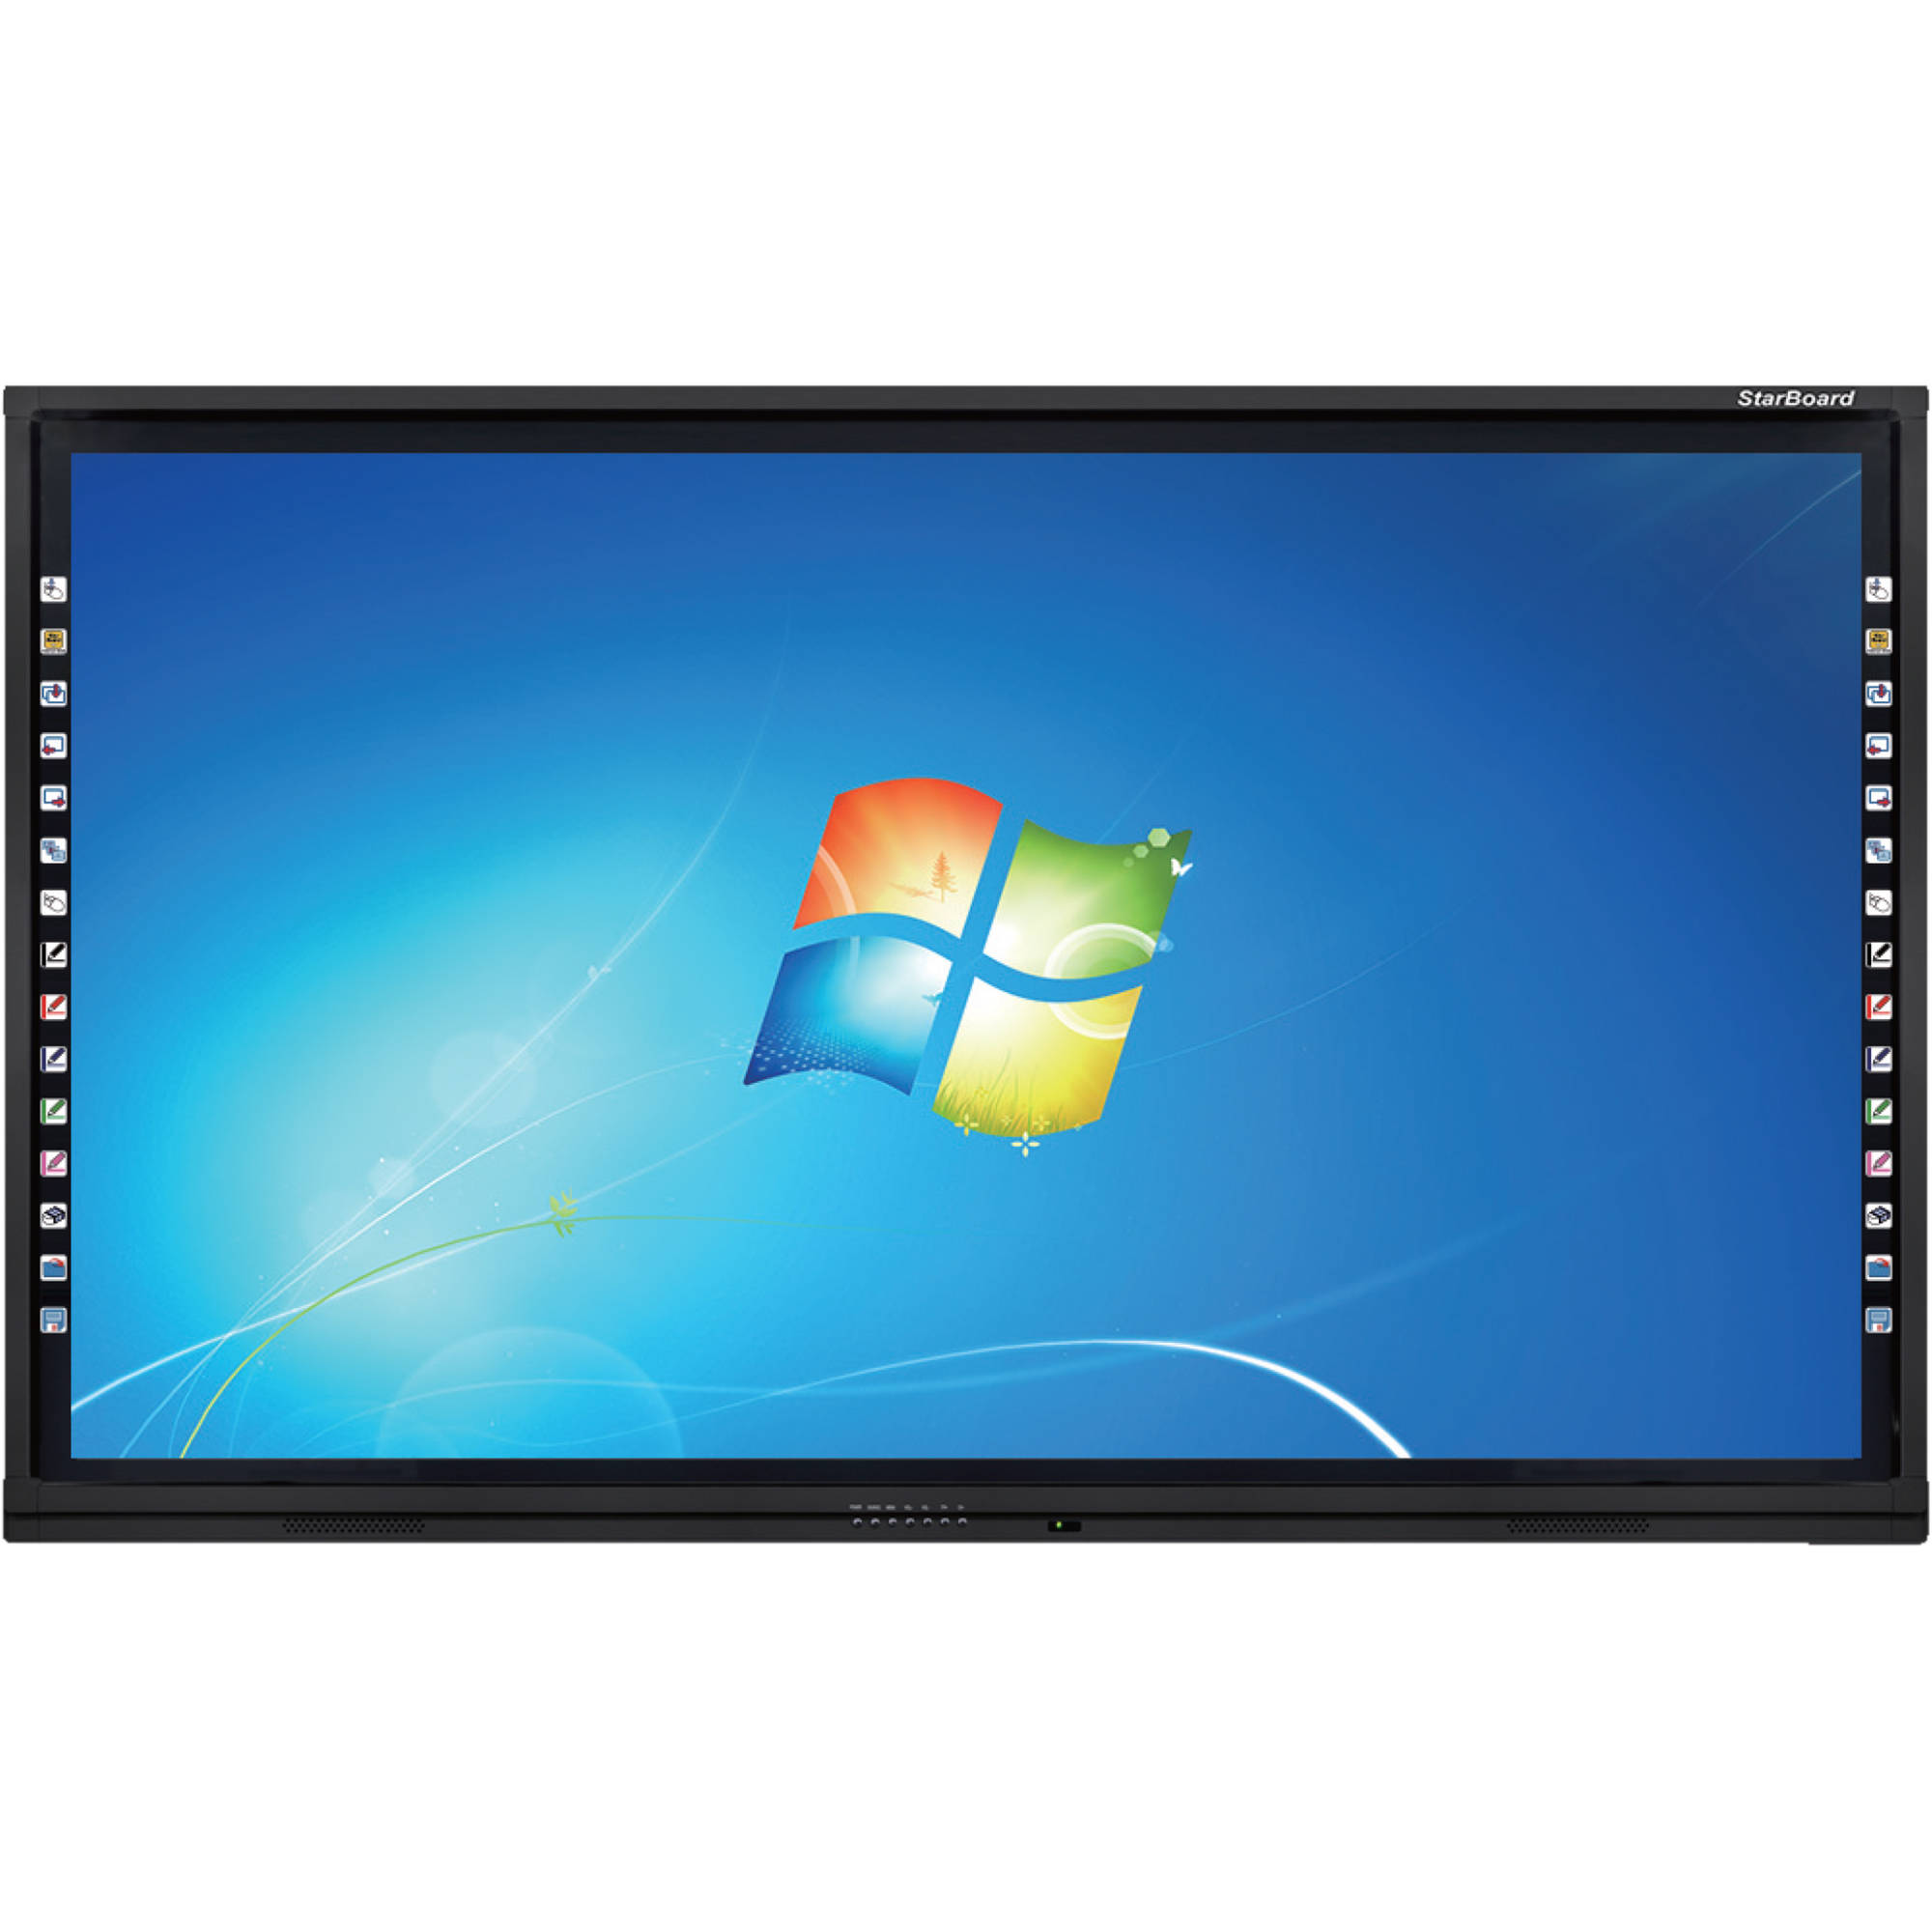 Dell Latitude CP tC/iR System Download Drivers